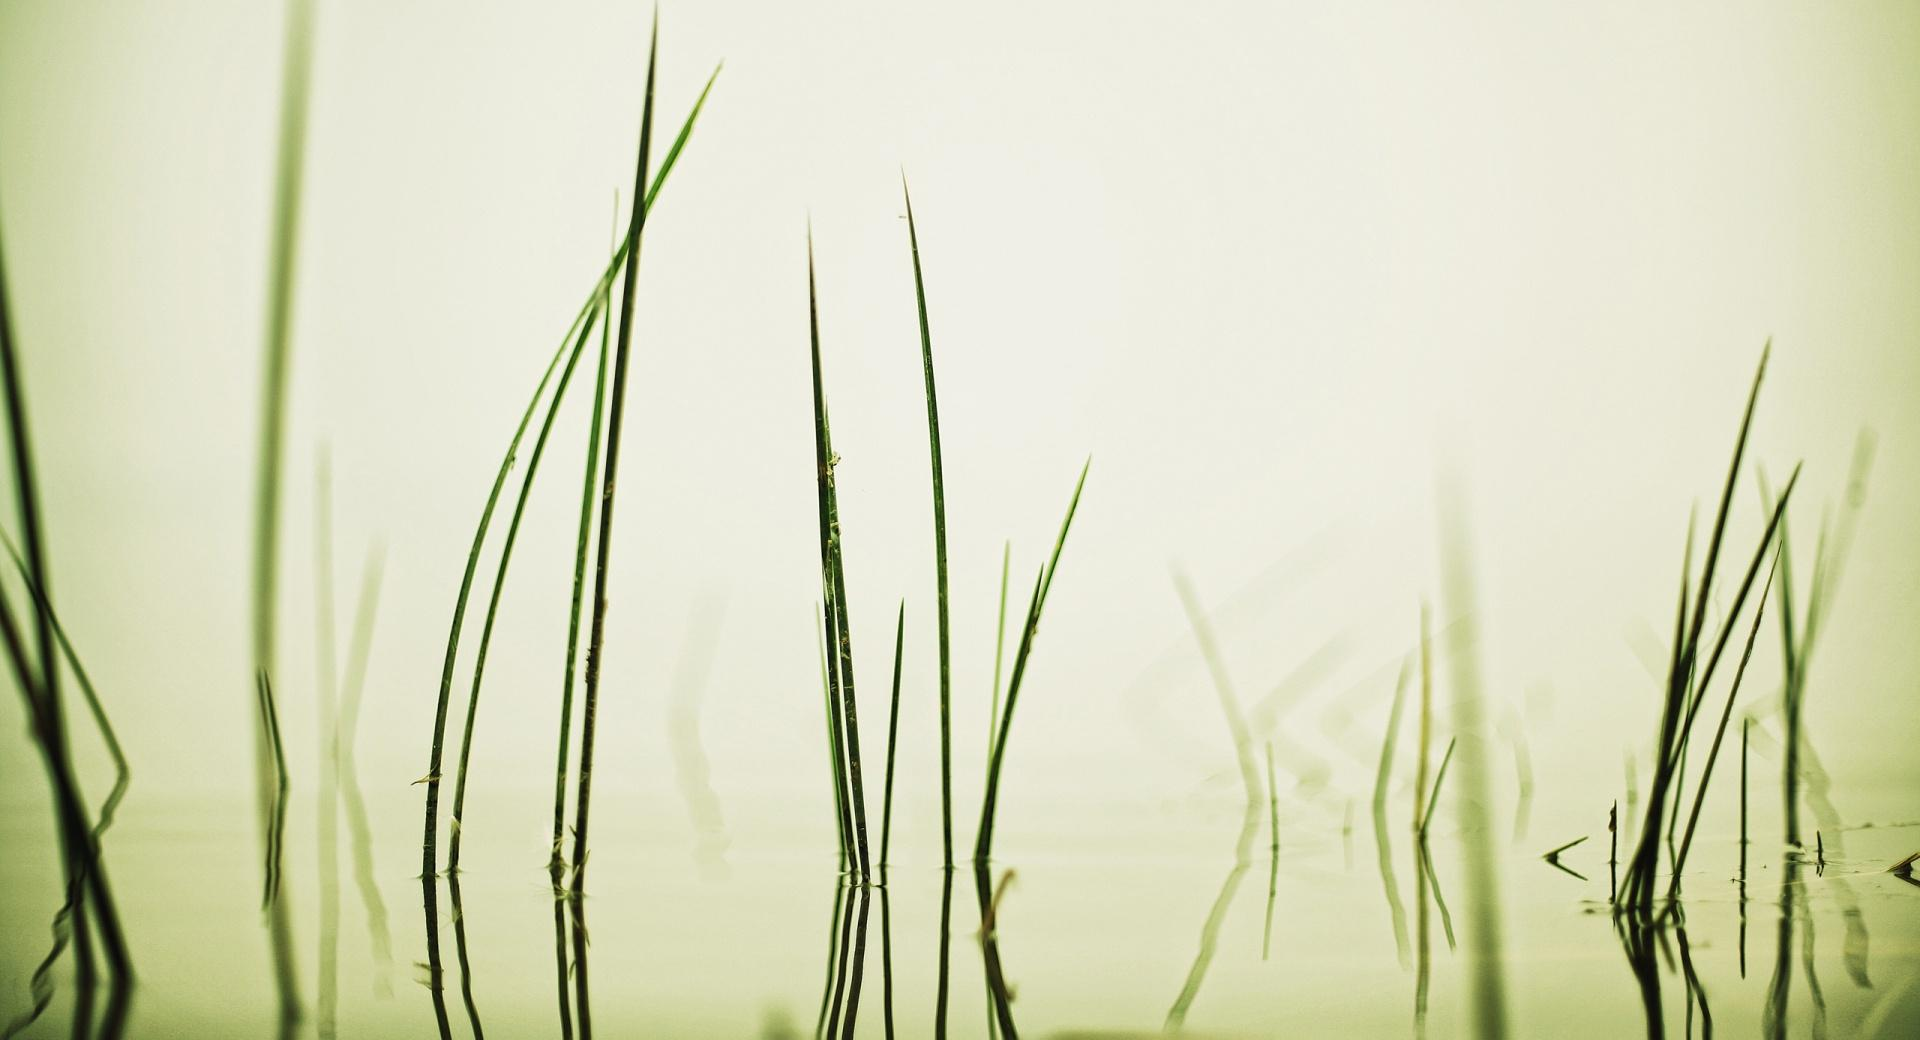 Water Grass wallpapers HD quality